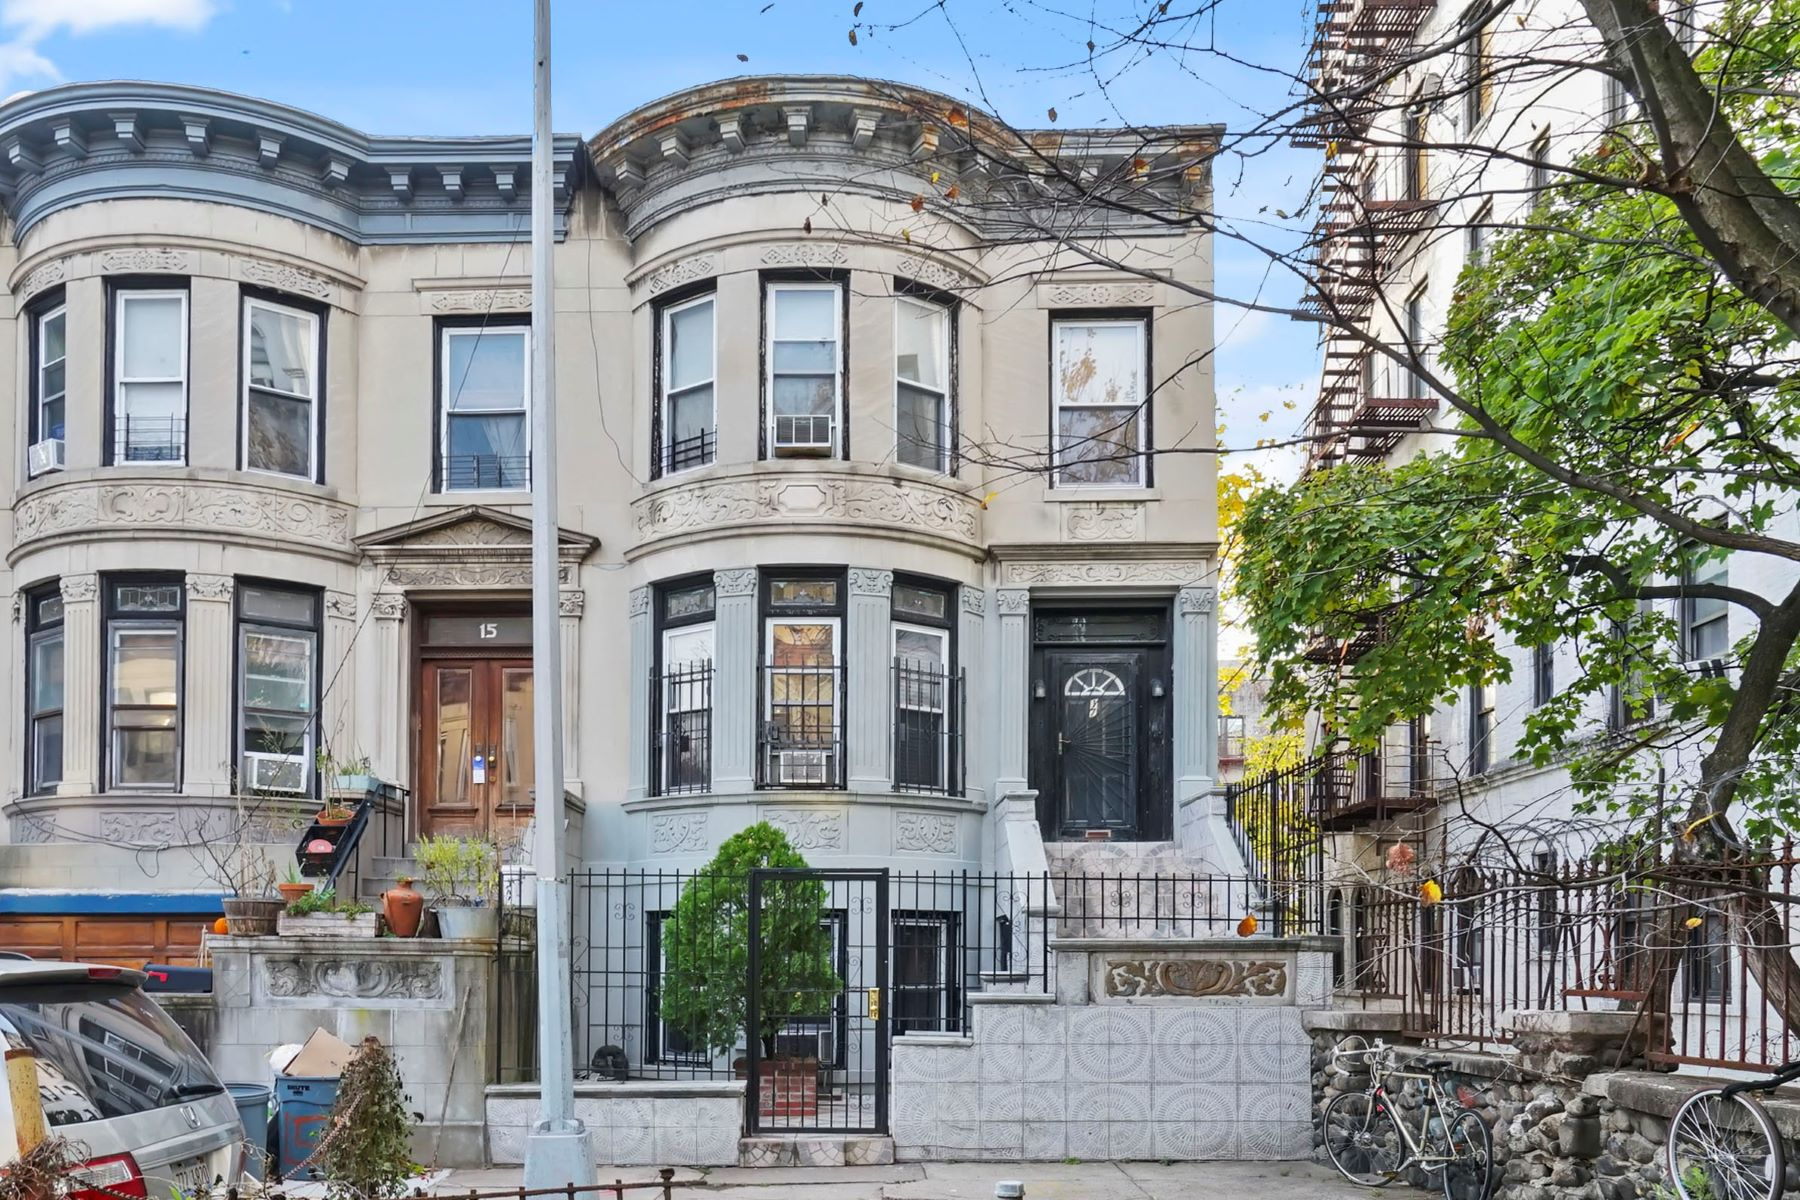 Multi-Family Homes for Sale at 17 Parkside Court Brooklyn, New York 11226 United States